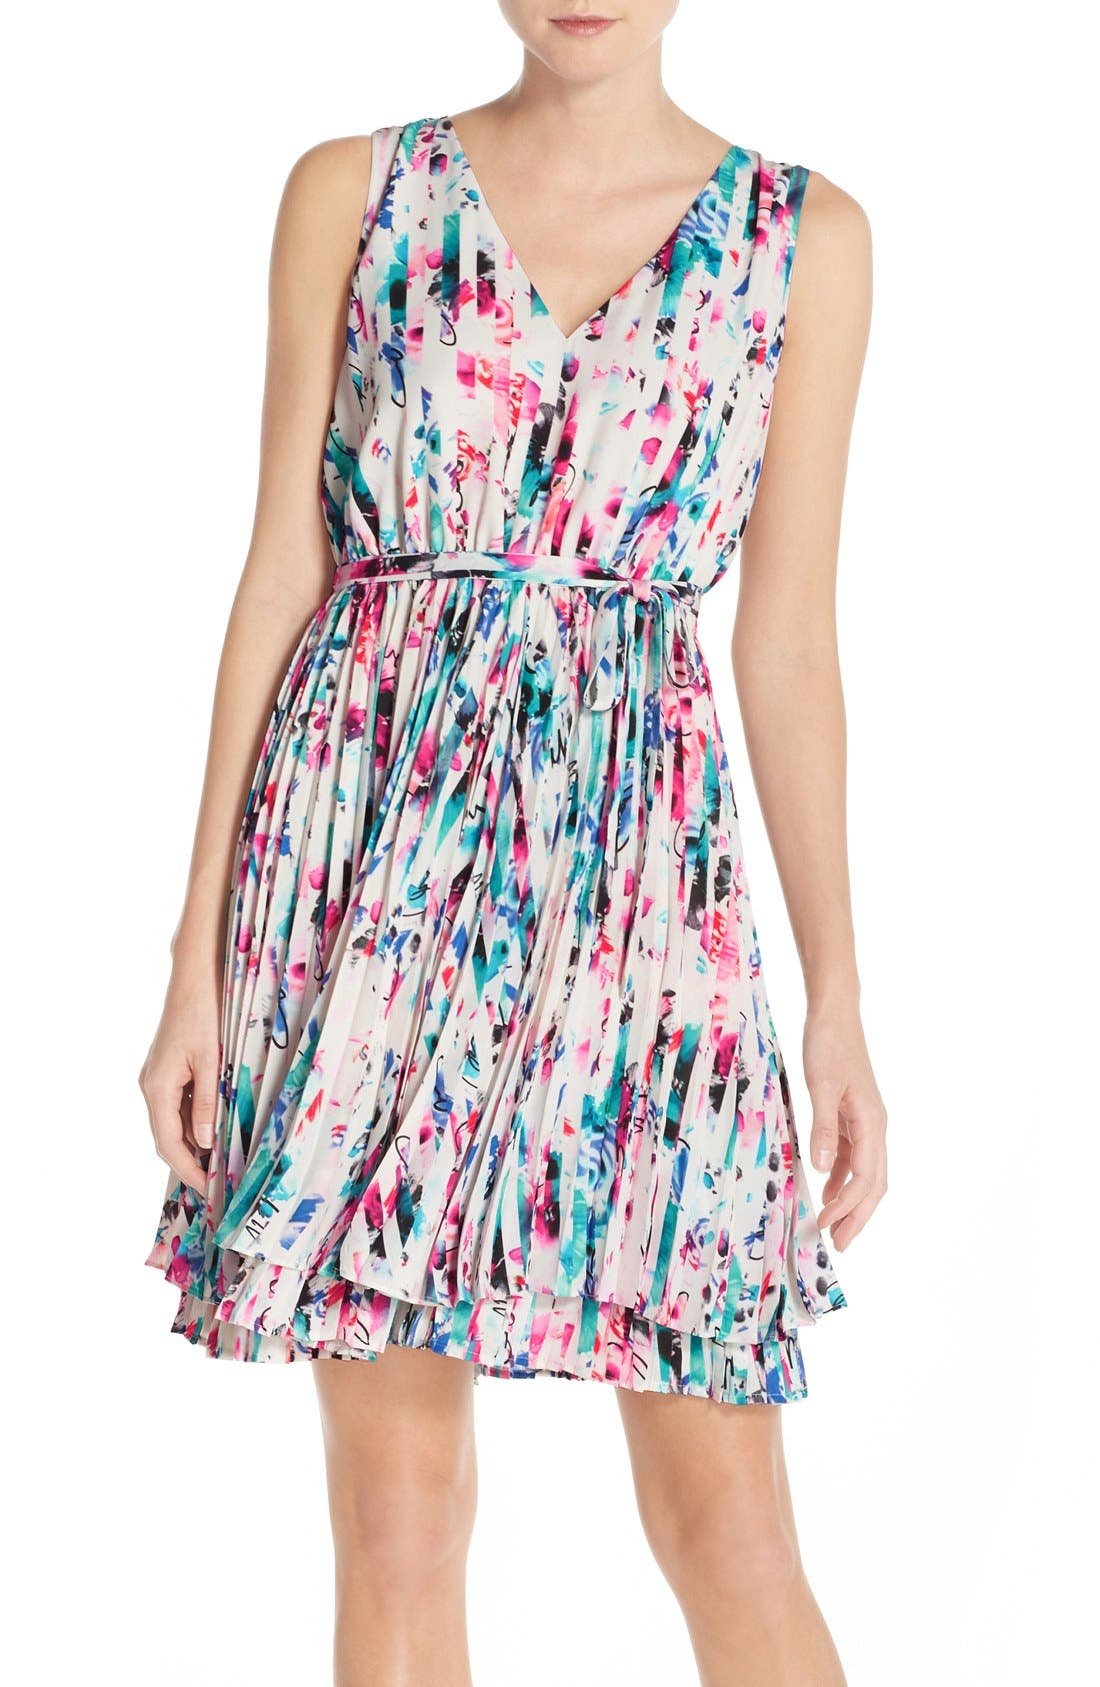 Main Image - Chelsea28 Print Woven Fit & Flare Dress